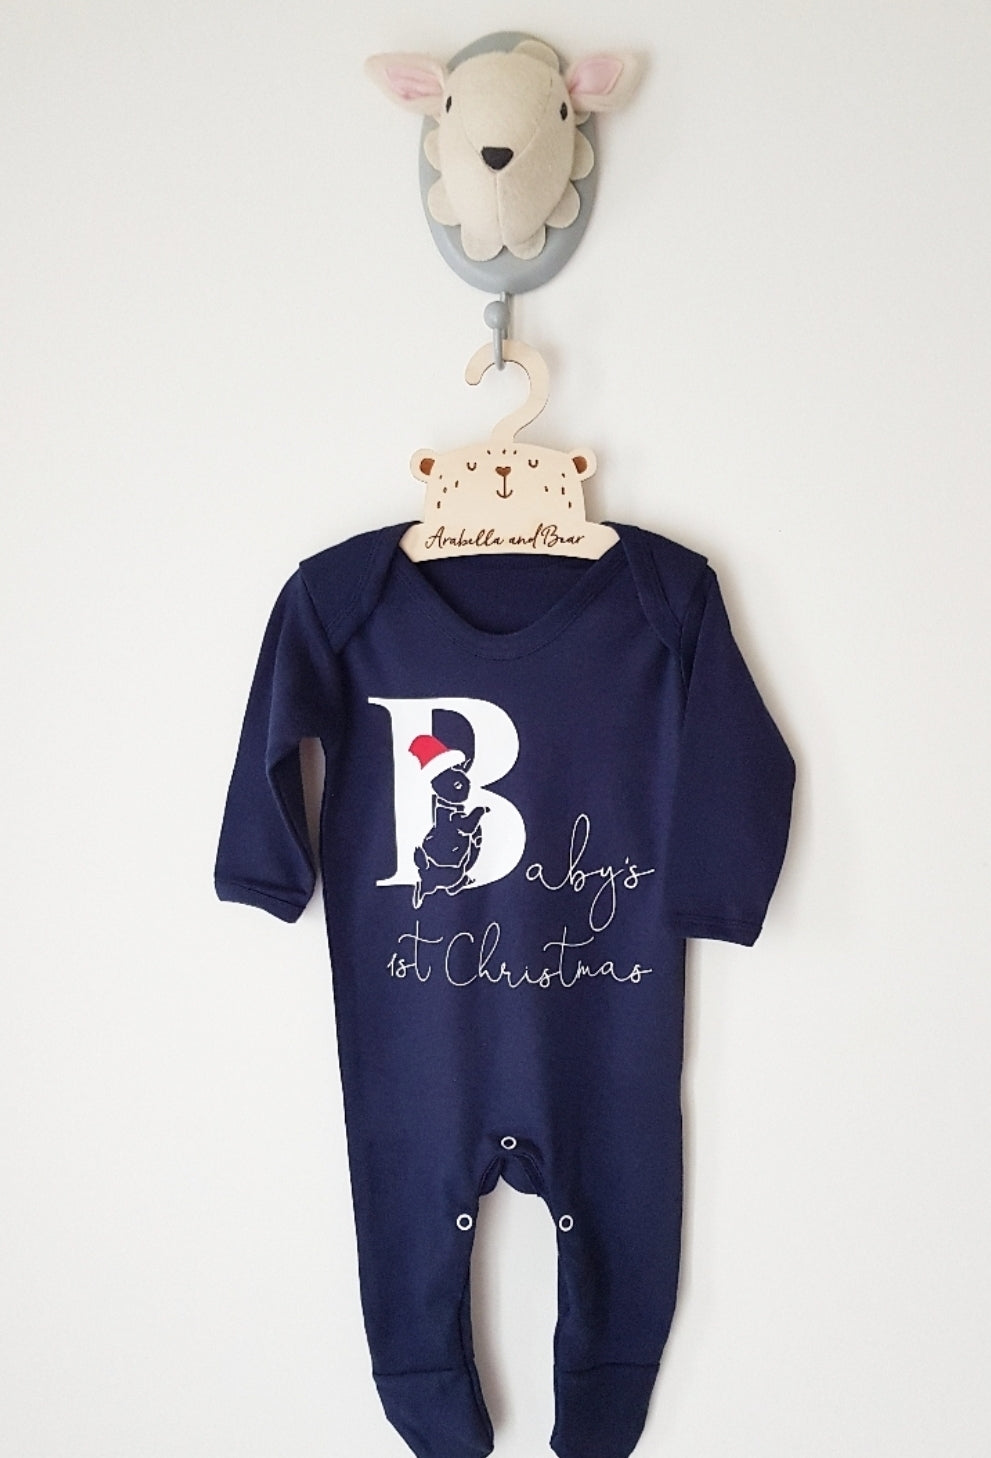 Navy blue Baby's 1st Christmas - Unisex - Peter Rabbit - all in one - loungewear